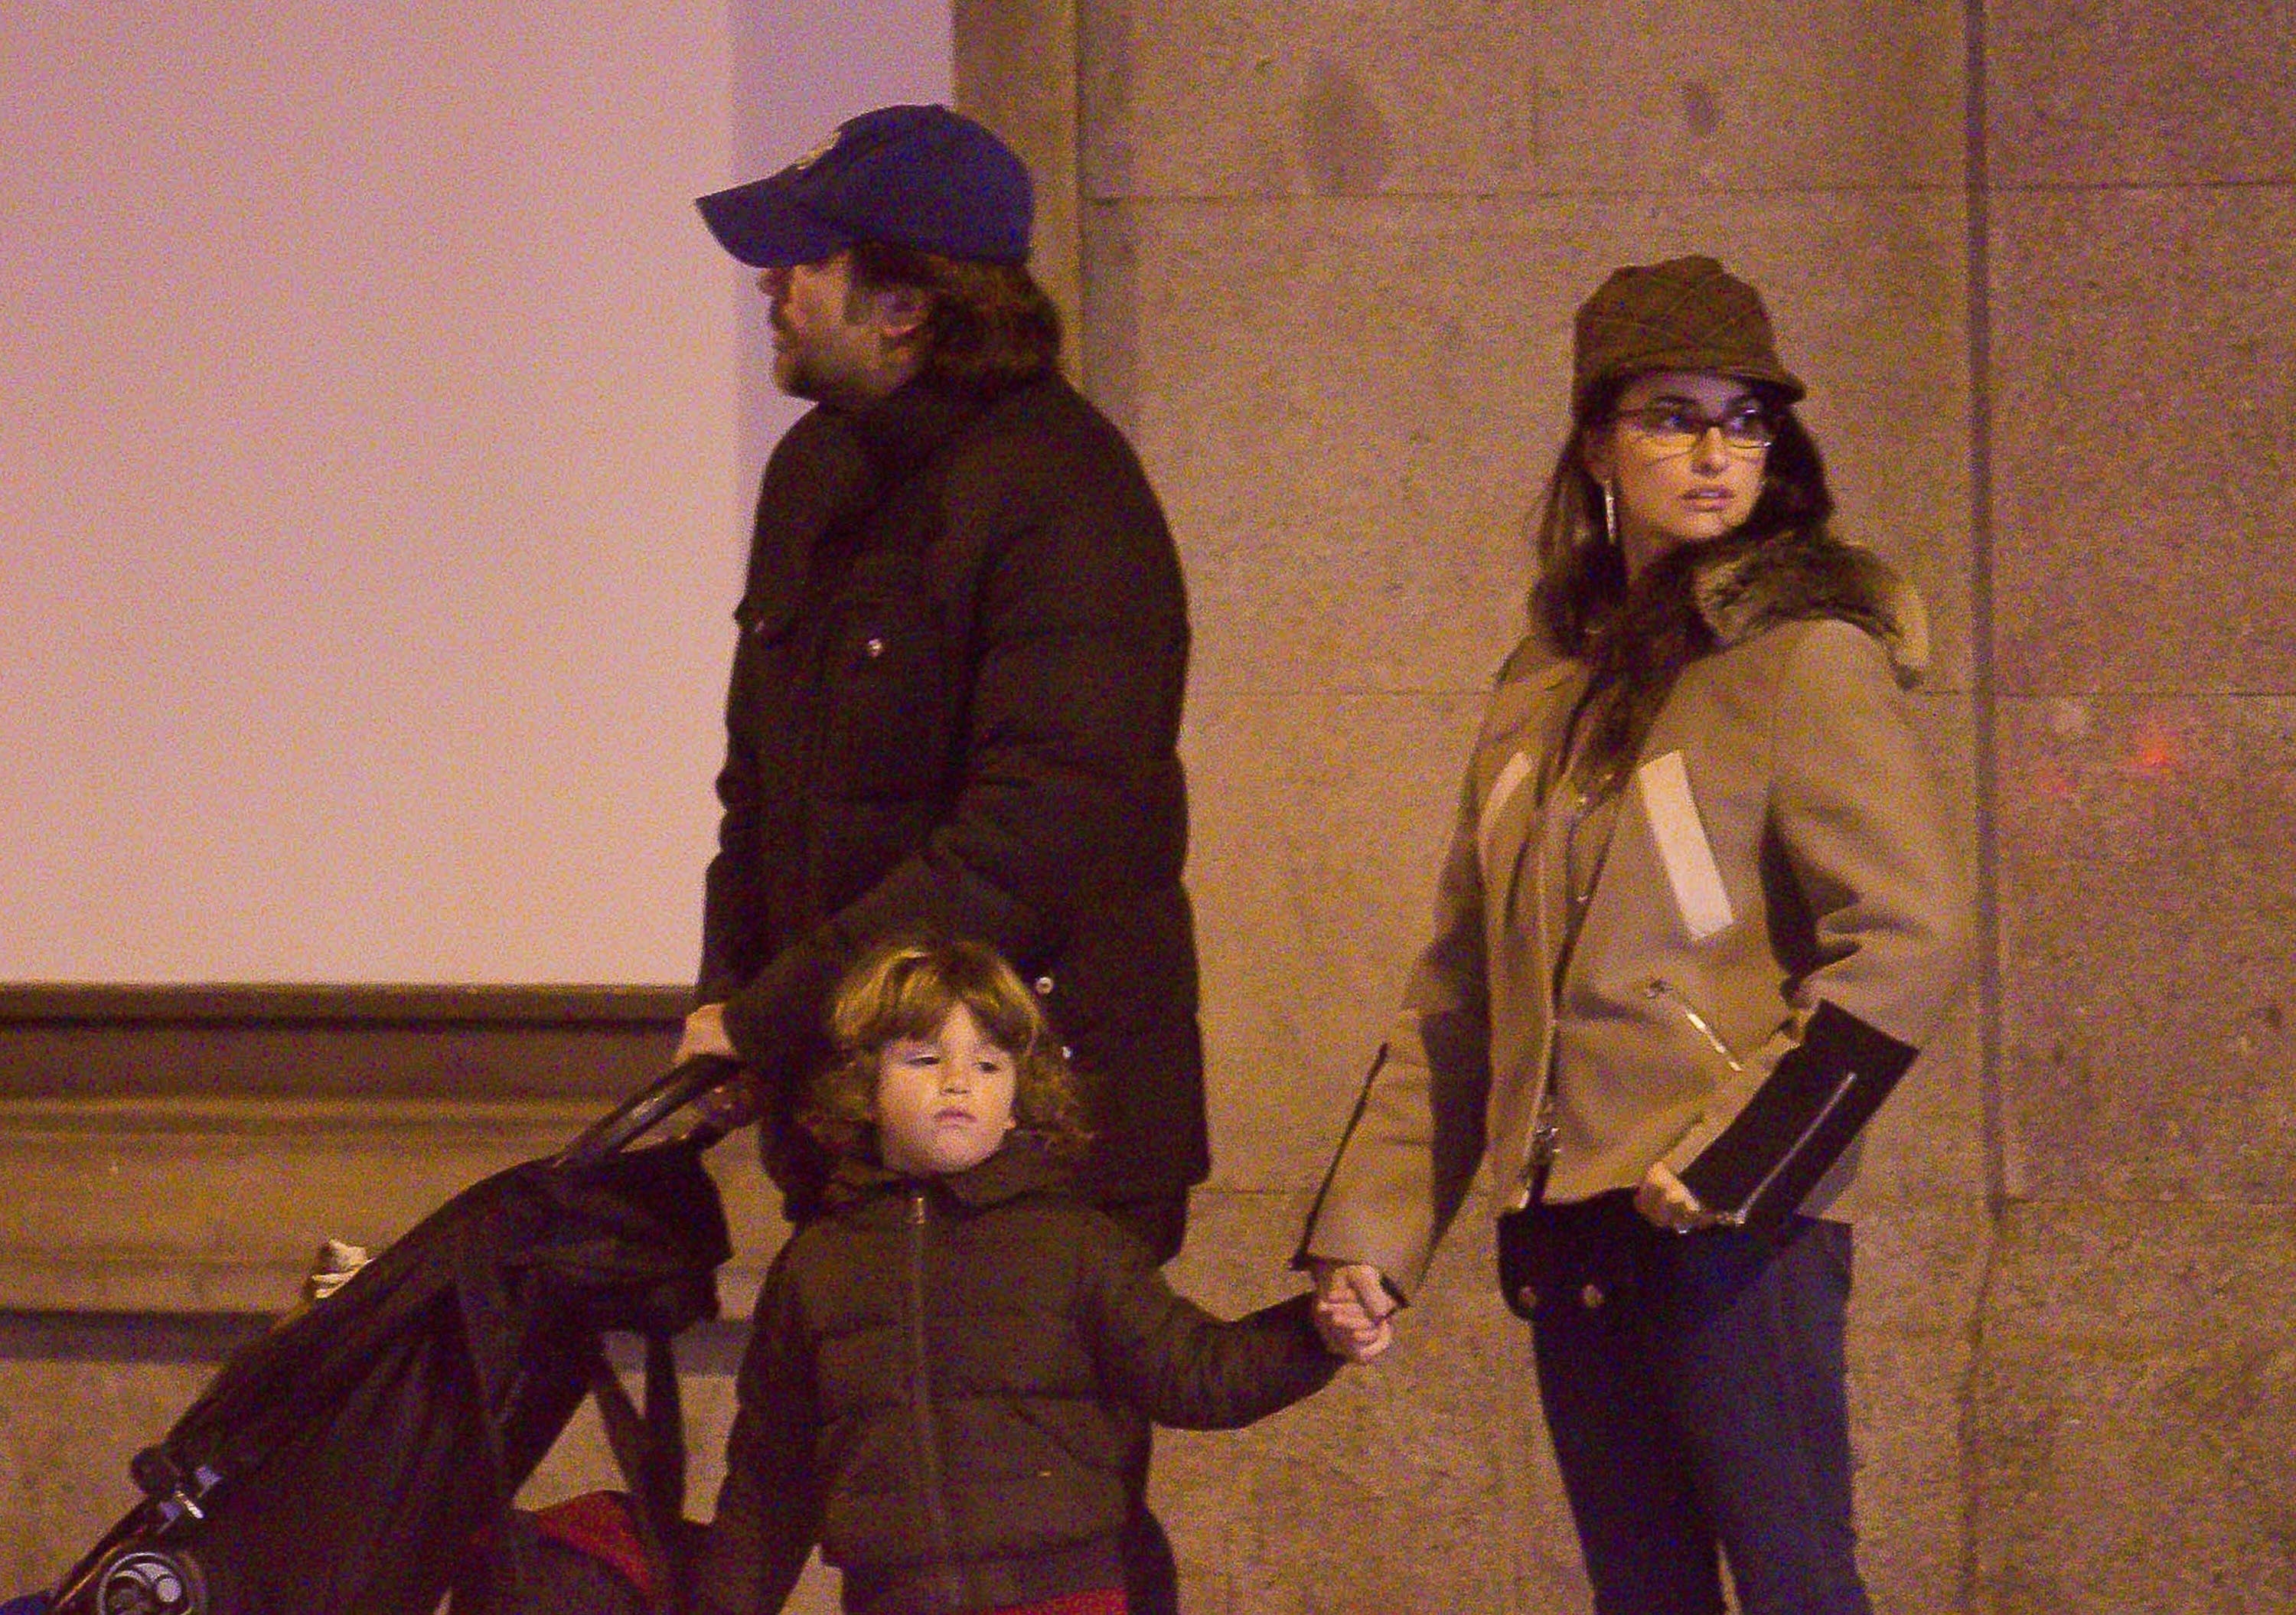 Javier Bardem and Penelope Cruz go for a walk with son Leo and daughter Luna in Madrid, Spain, on Dec. 26, 2014.